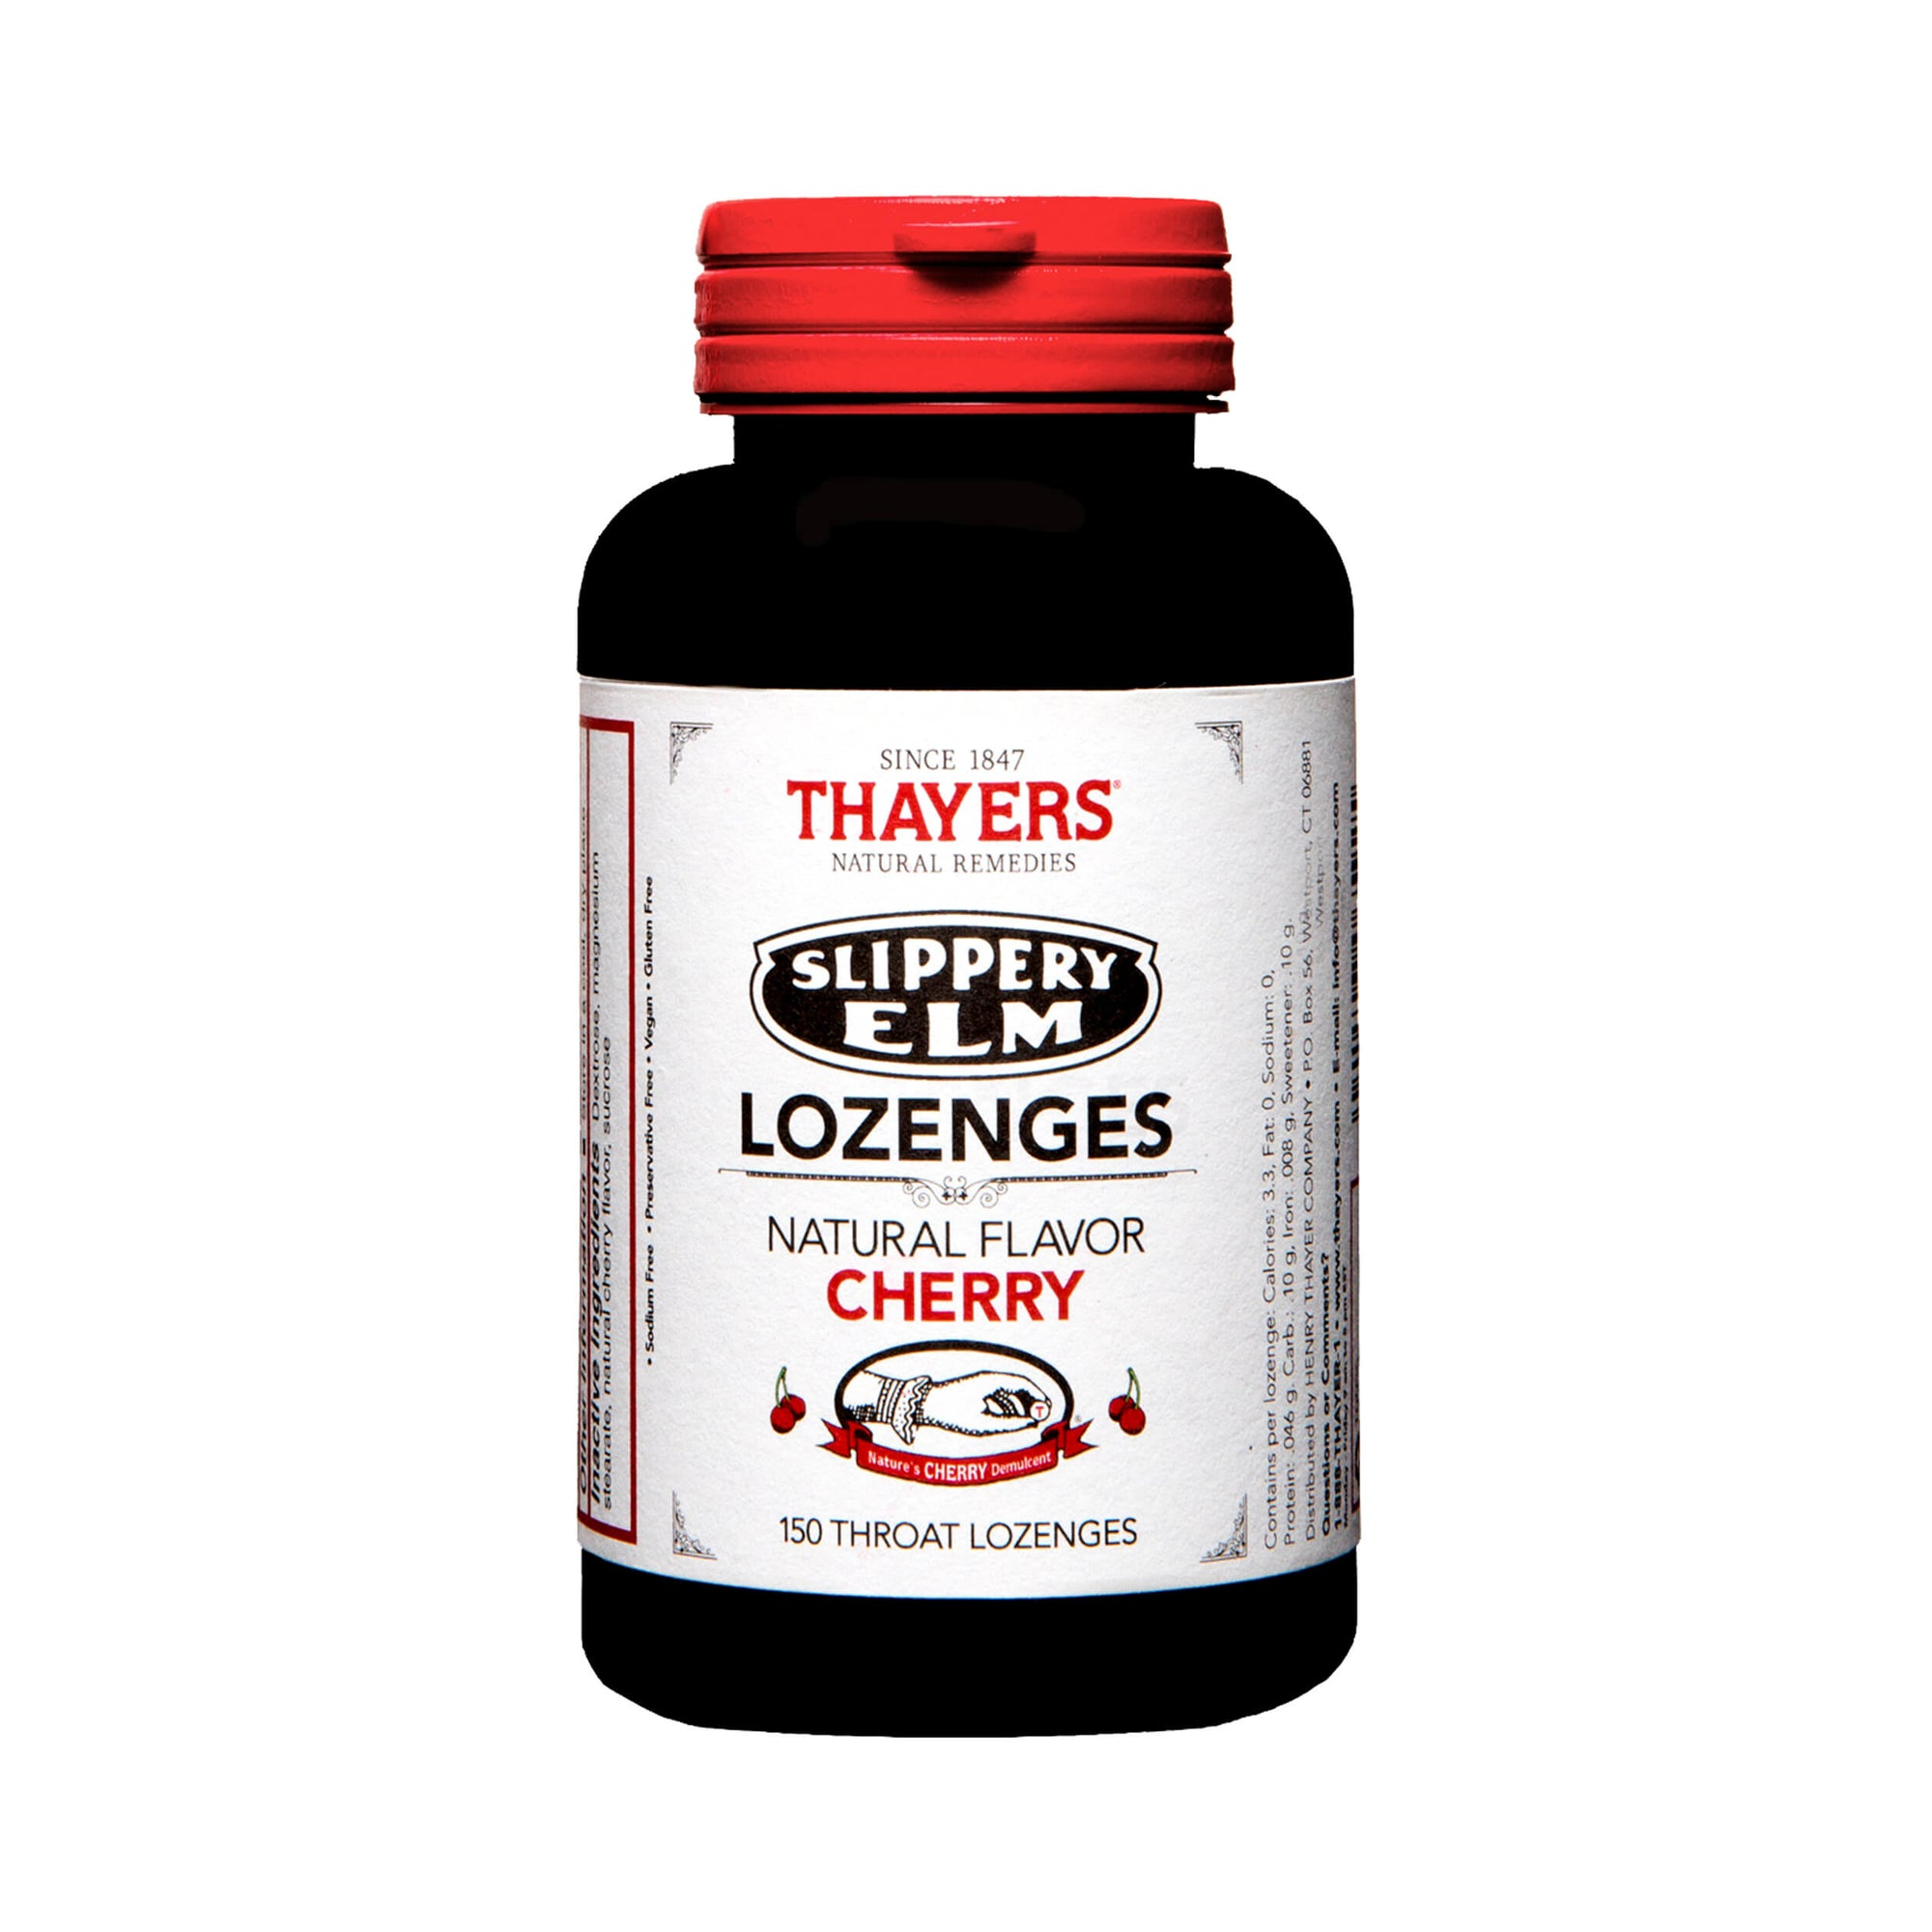 Thayers Slippery Elm Lozenges Cherry 150 Lozenges